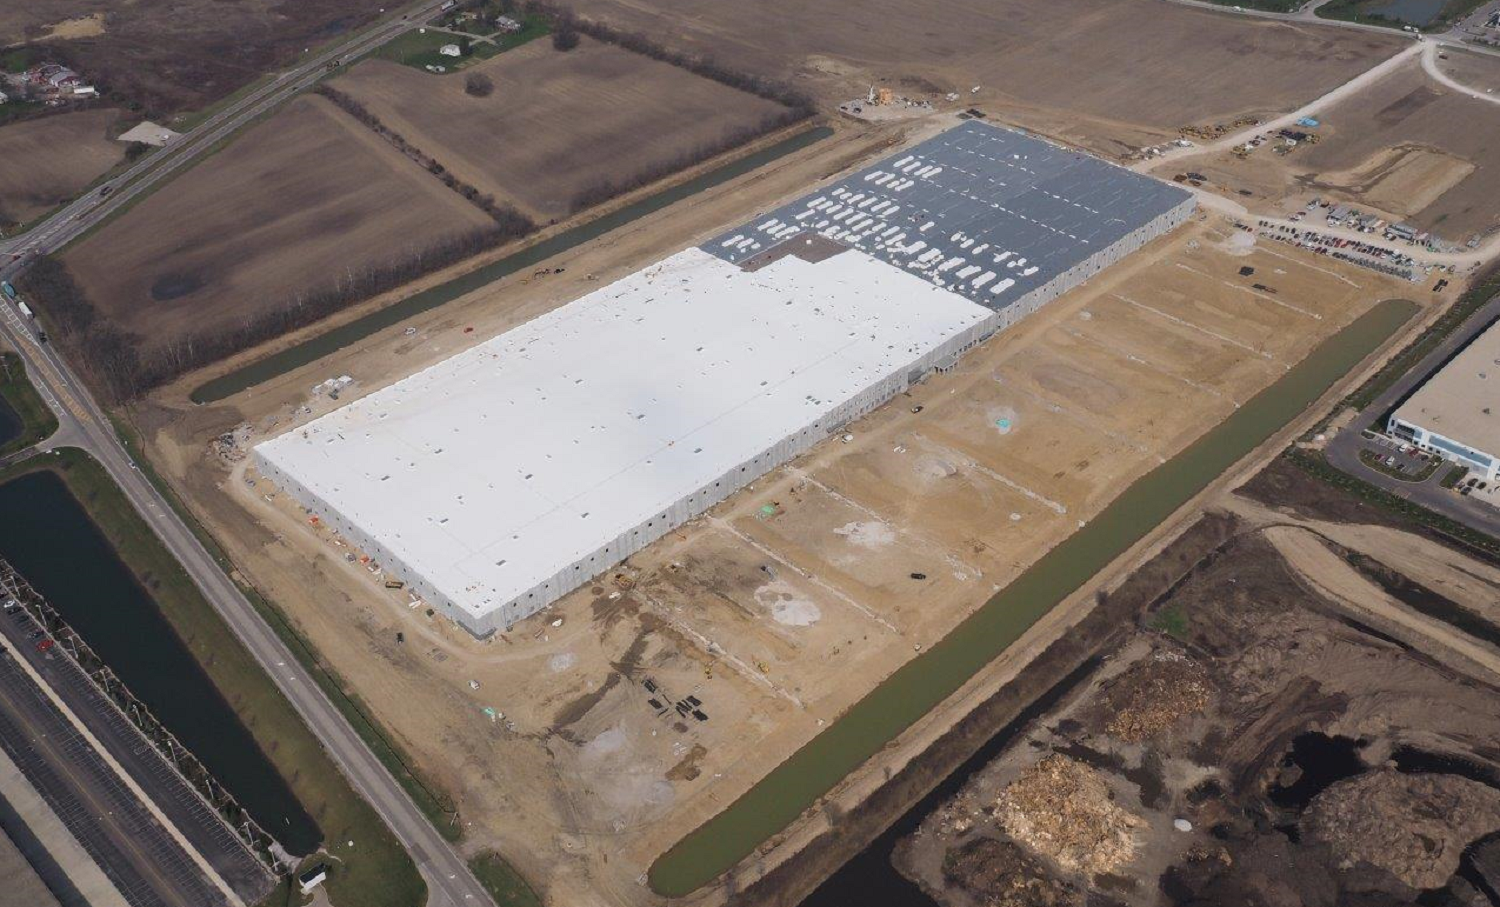 One million sq ft distribution center - Obetz, OH